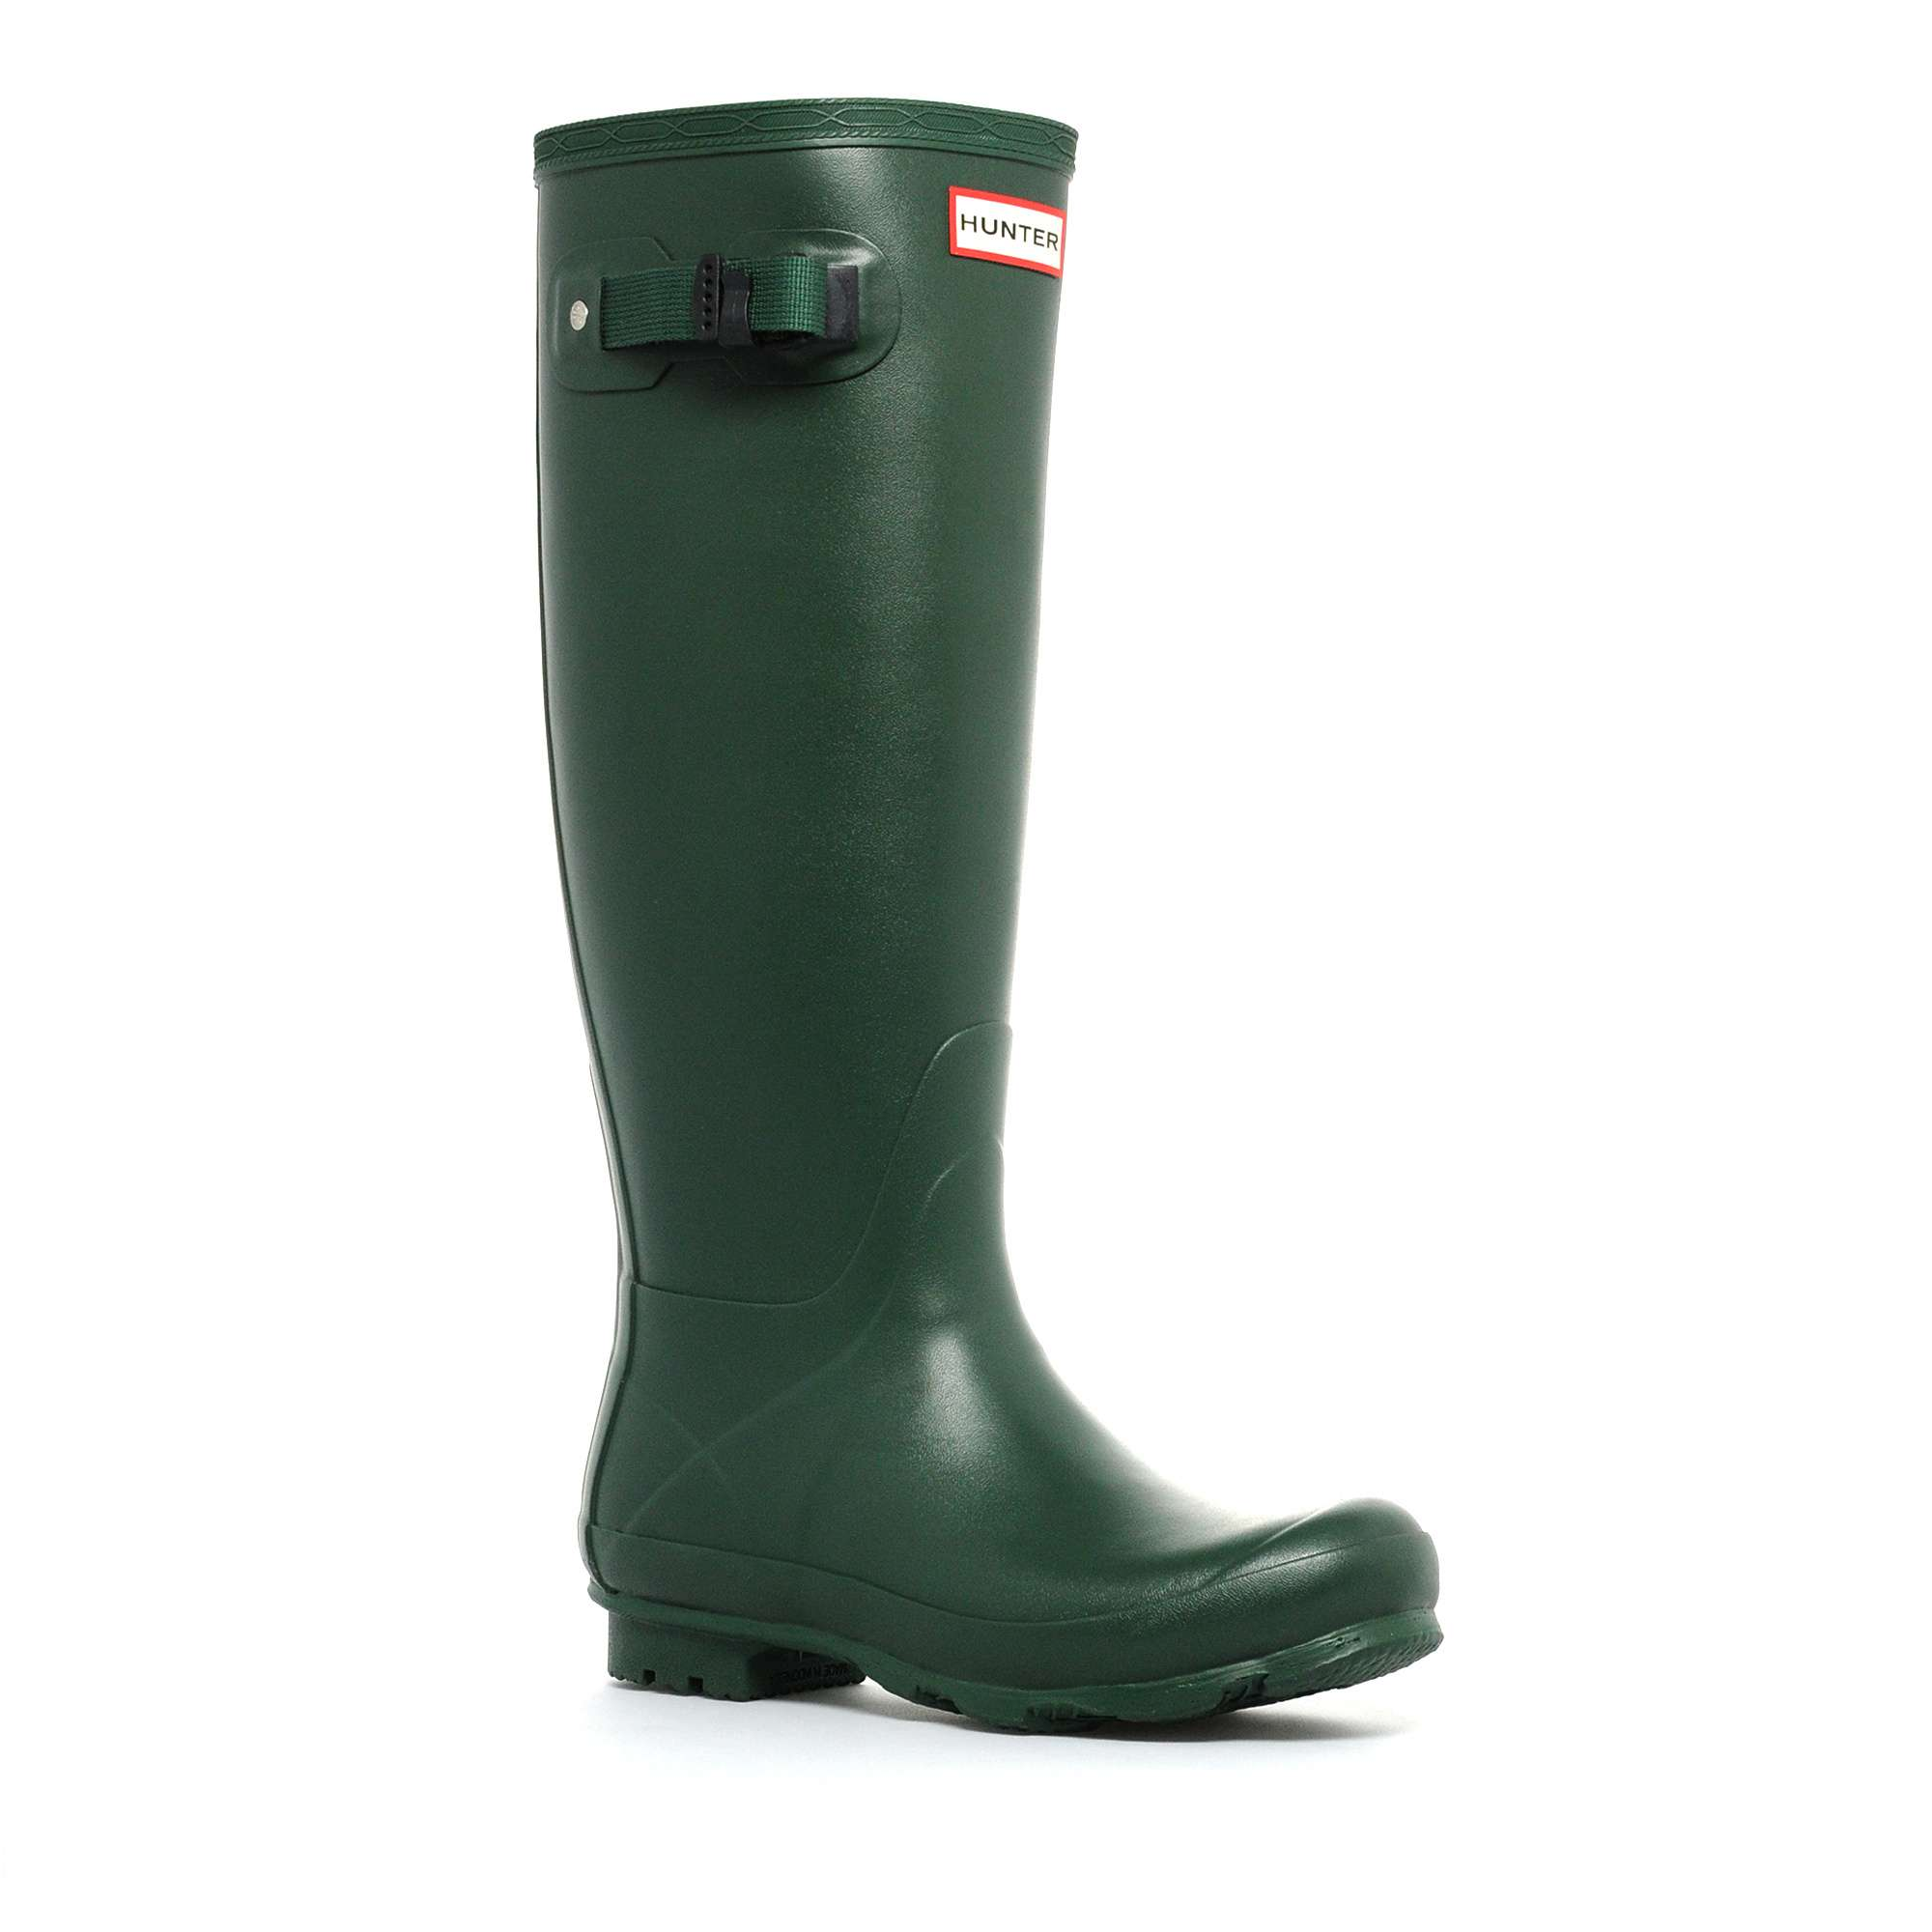 HUNTER Norris Wellies